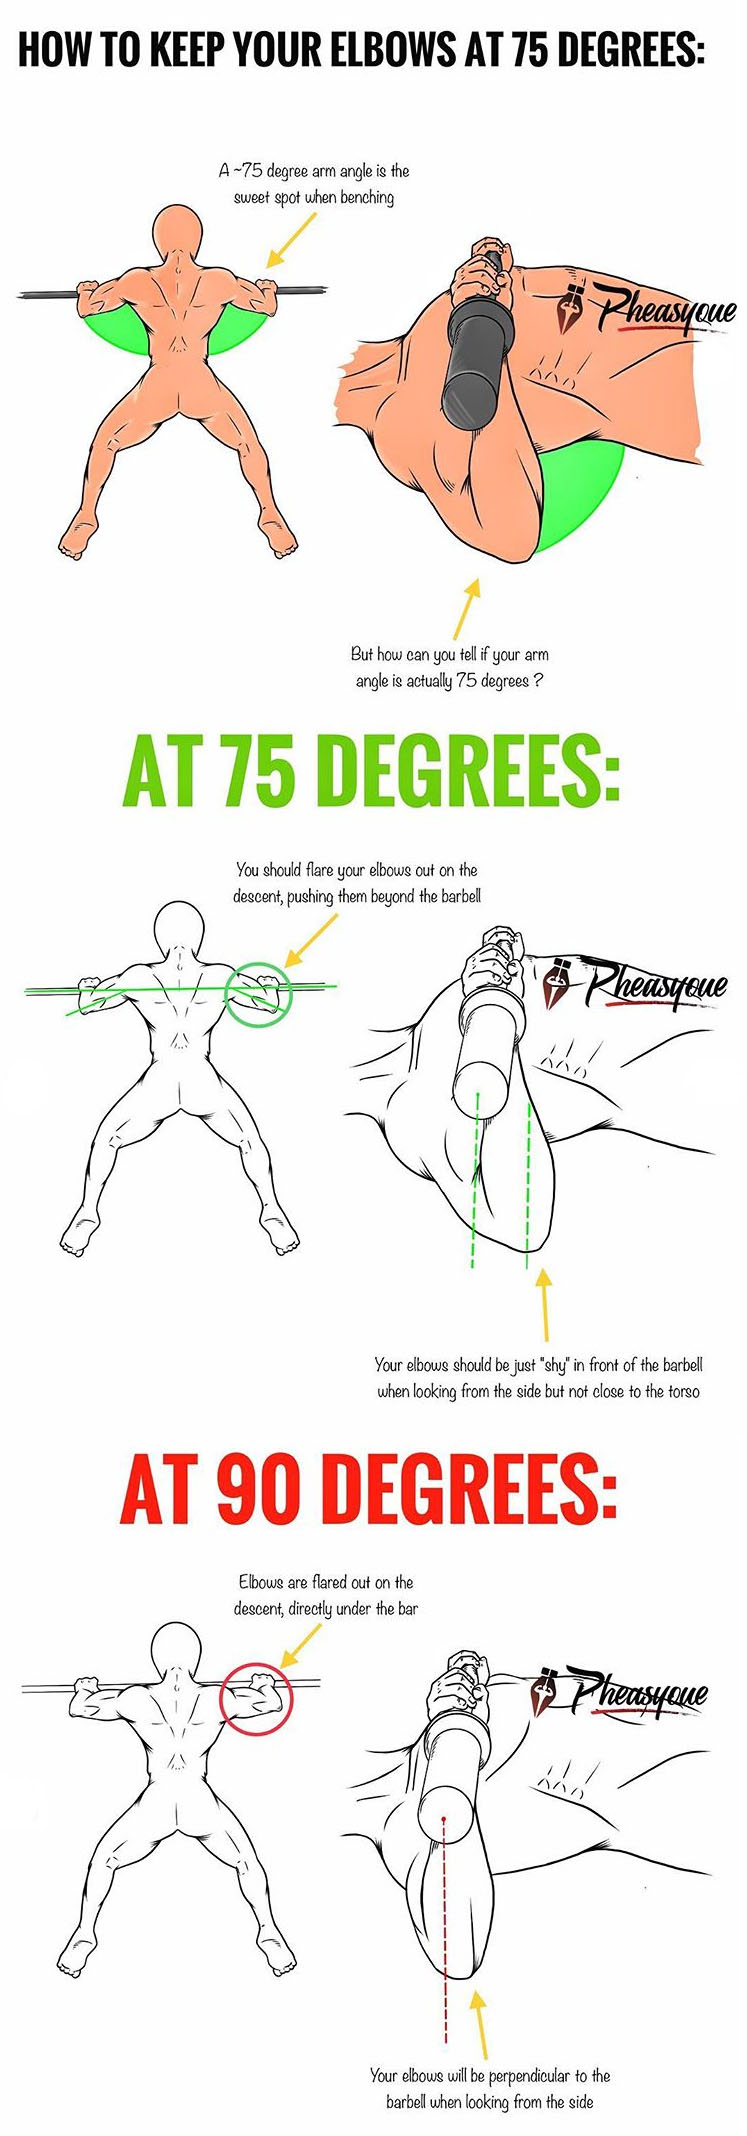 HOW TO KEEP YOUR ELBOWS AT 75 DEGREES WHEN BENCHING?